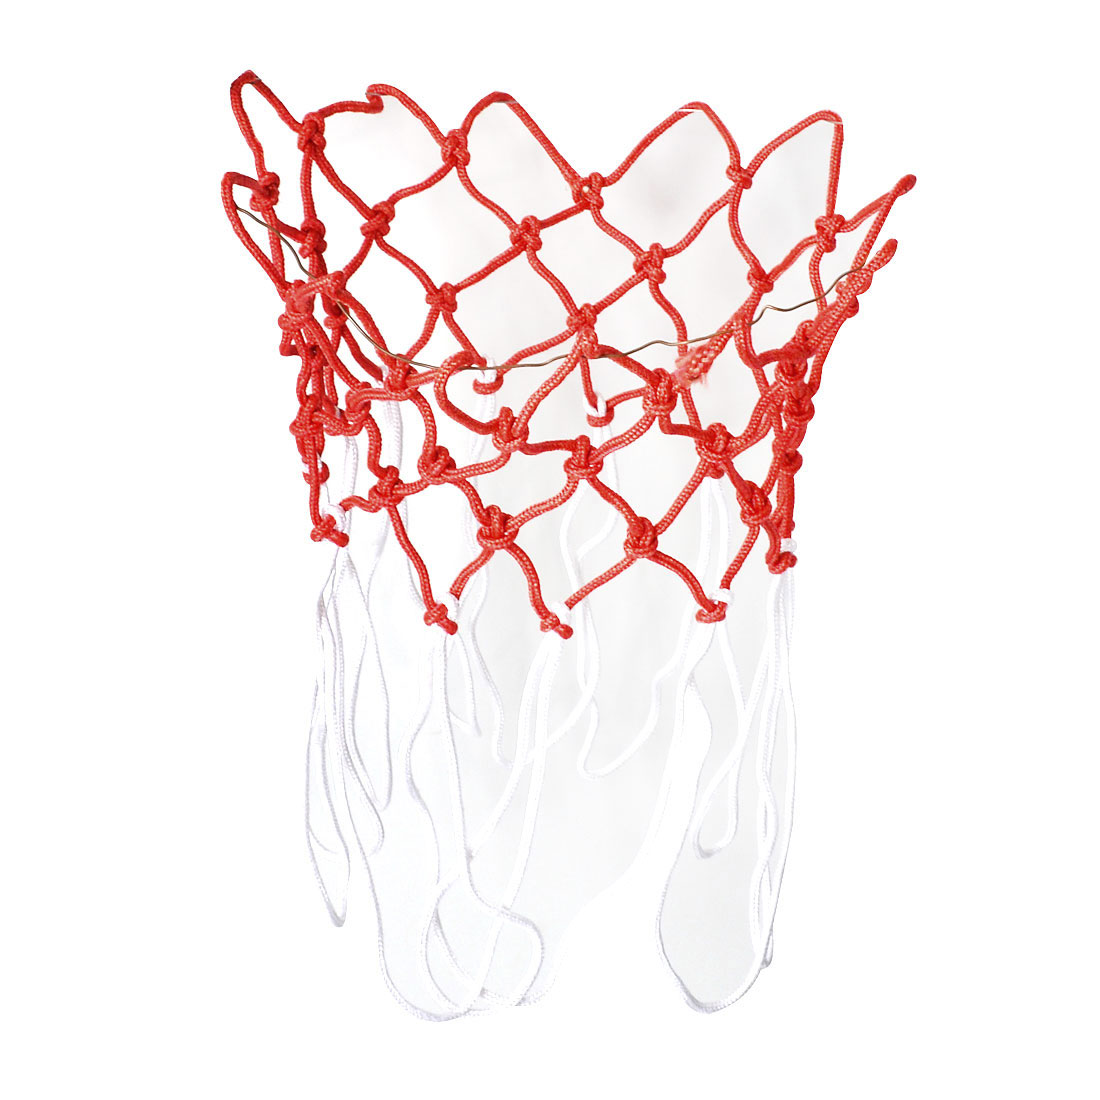 2 Pcs 44cm length Red White Braided Nylon Basketball Net